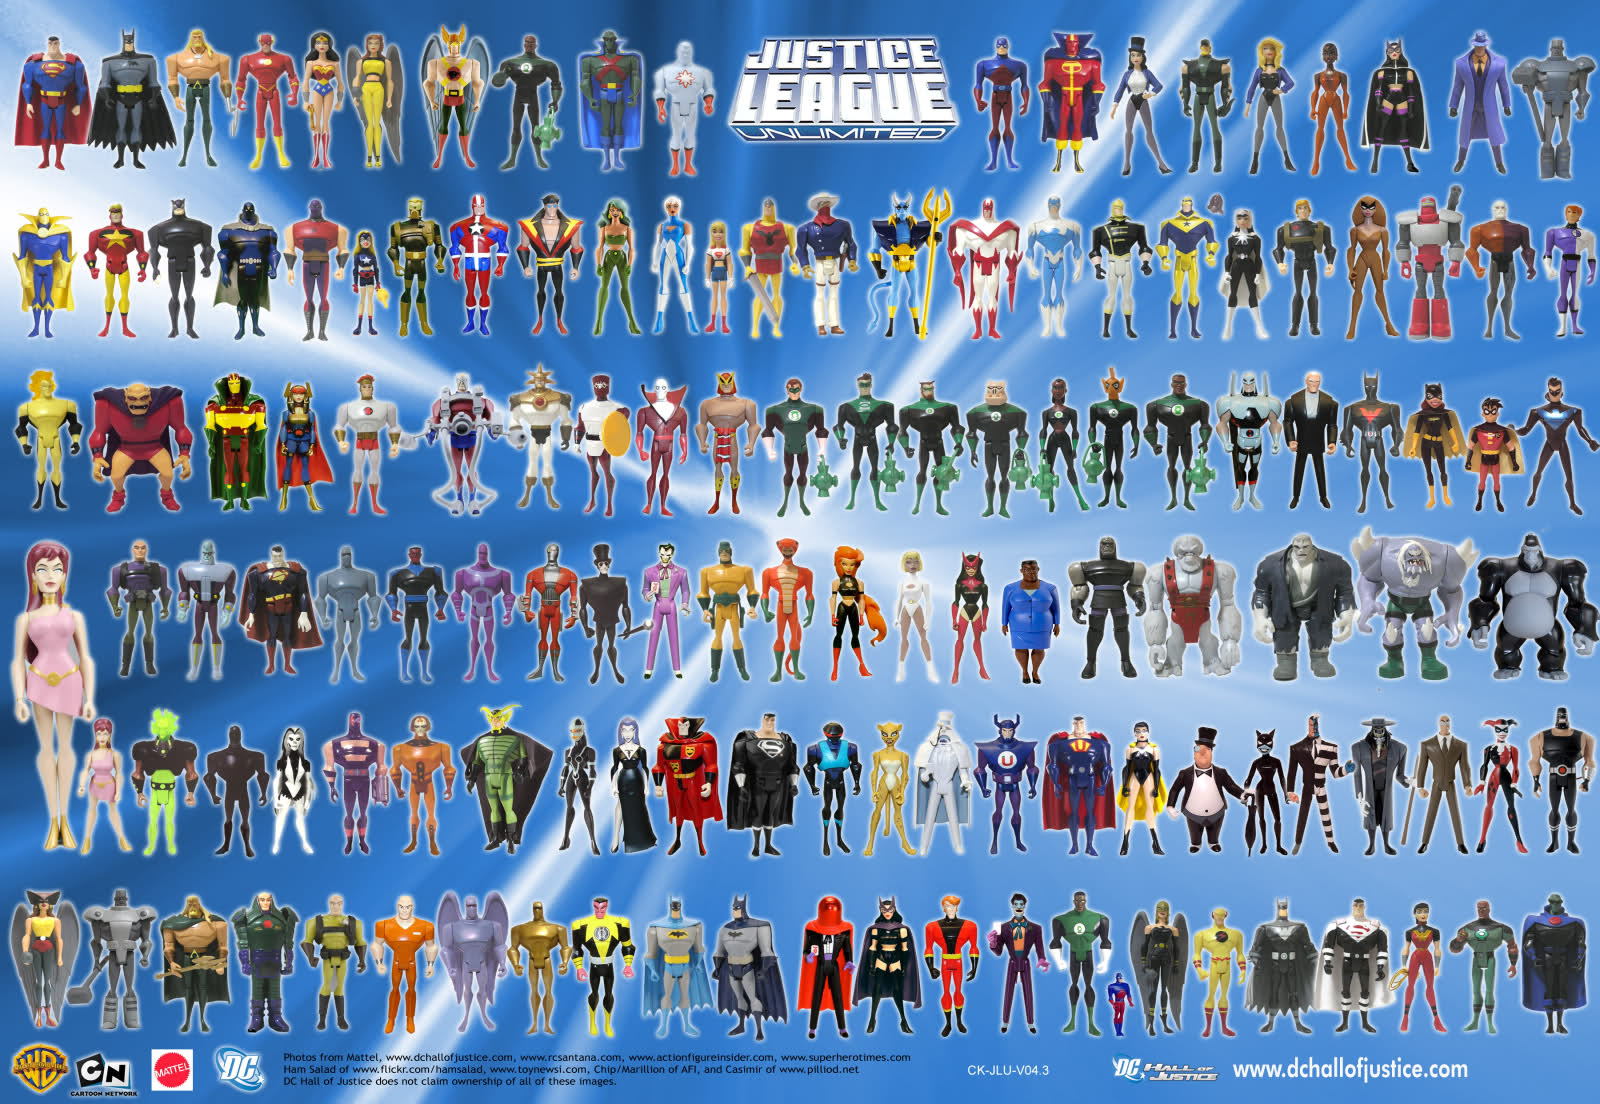 Justice League Unlimited - Cast Images | Behind The Voice ... |Justice League Unlimited Characters